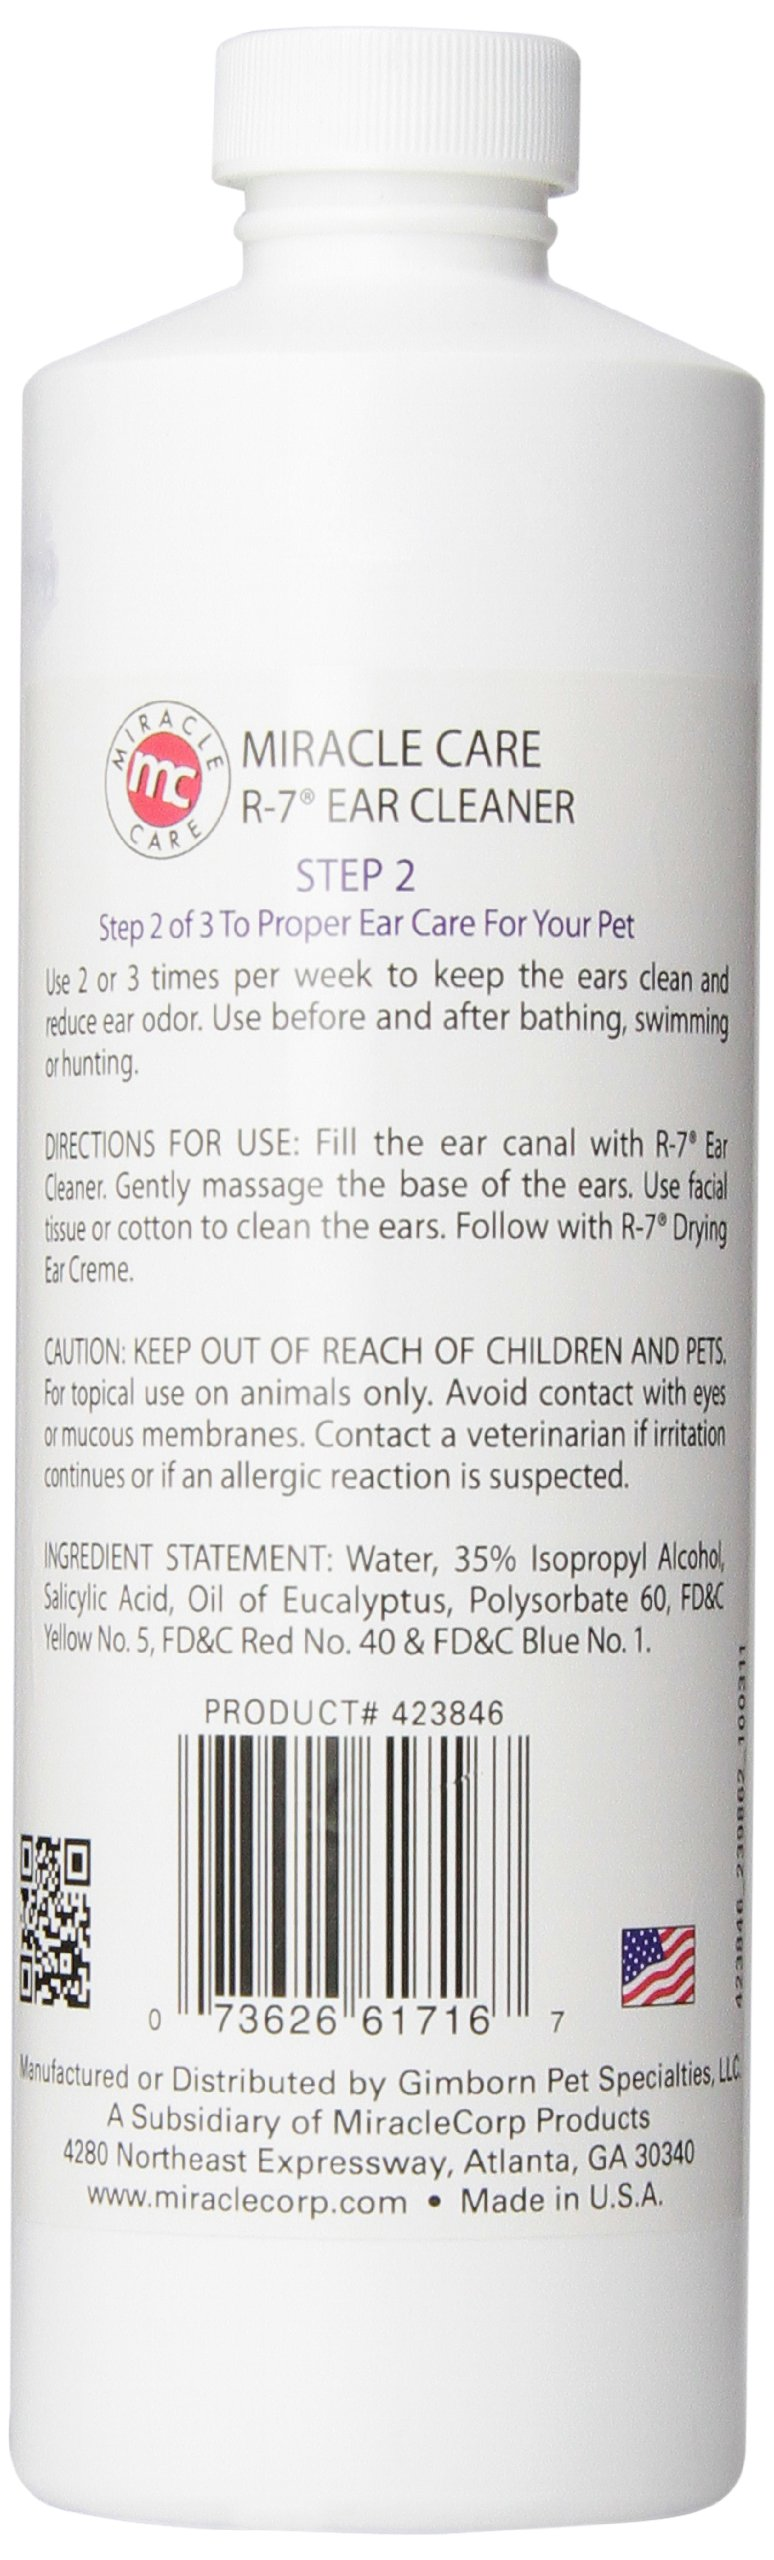 Miracle Care R-7 Ear Cleaner, 16-Ounce by Miracle Care (Image #3)